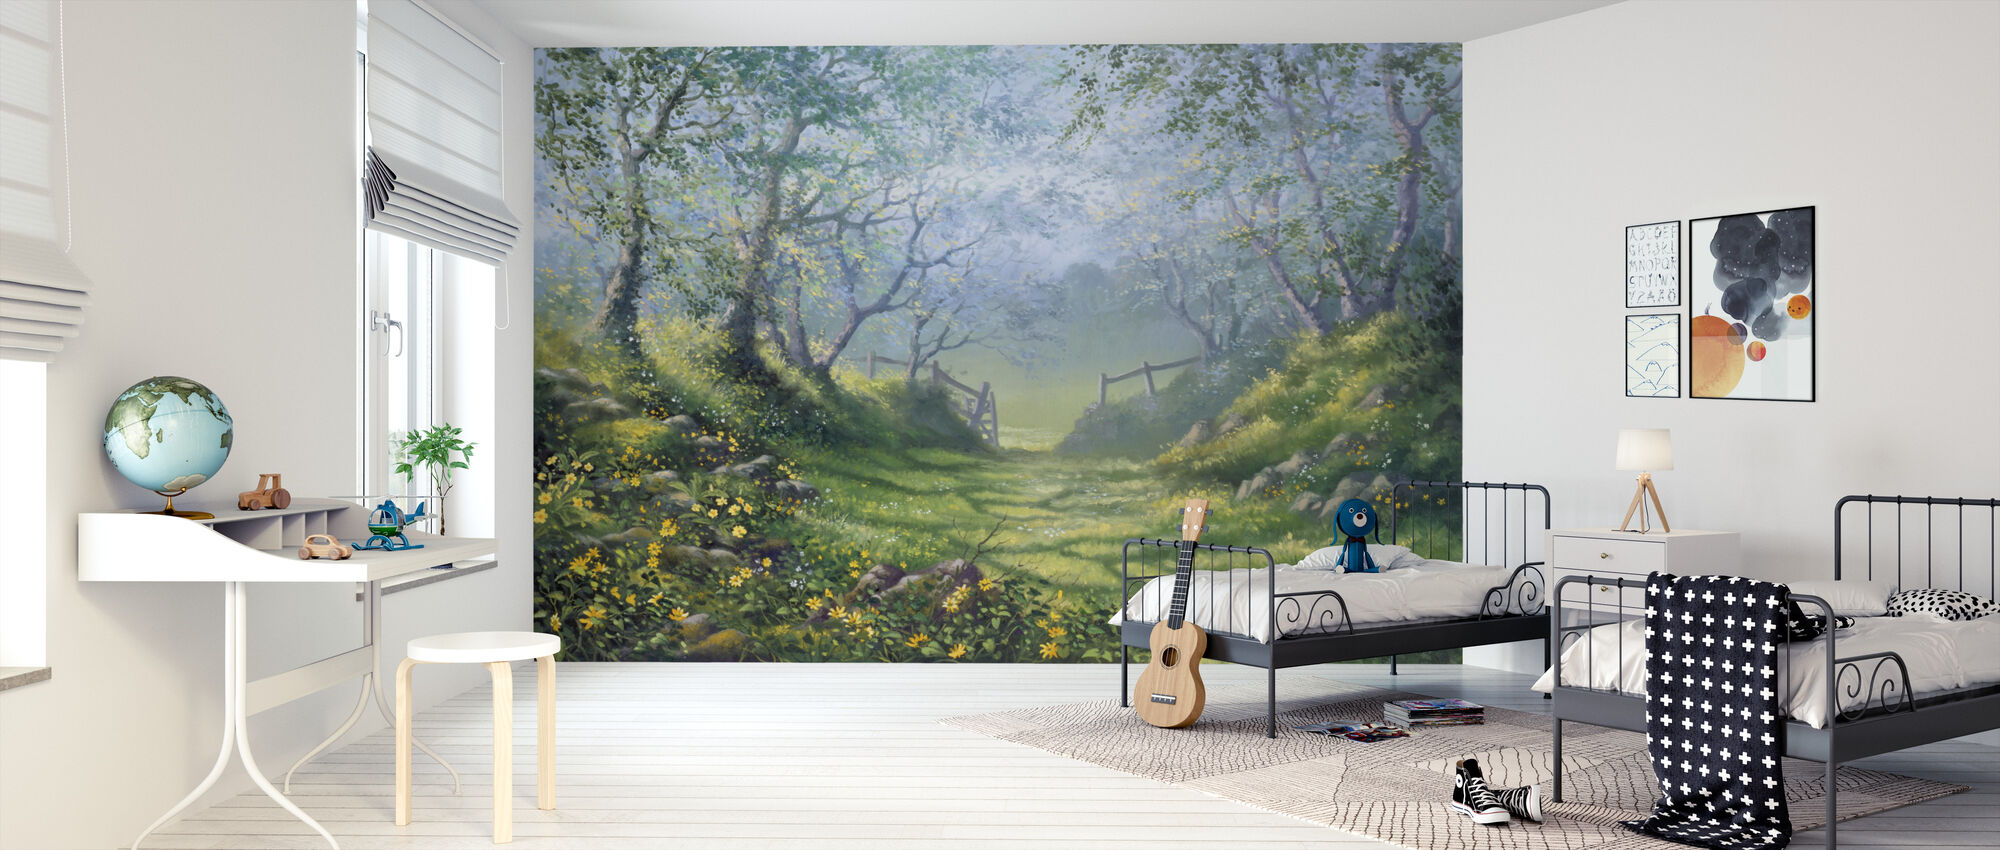 Early Spring Affordable Wall Mural Photowall